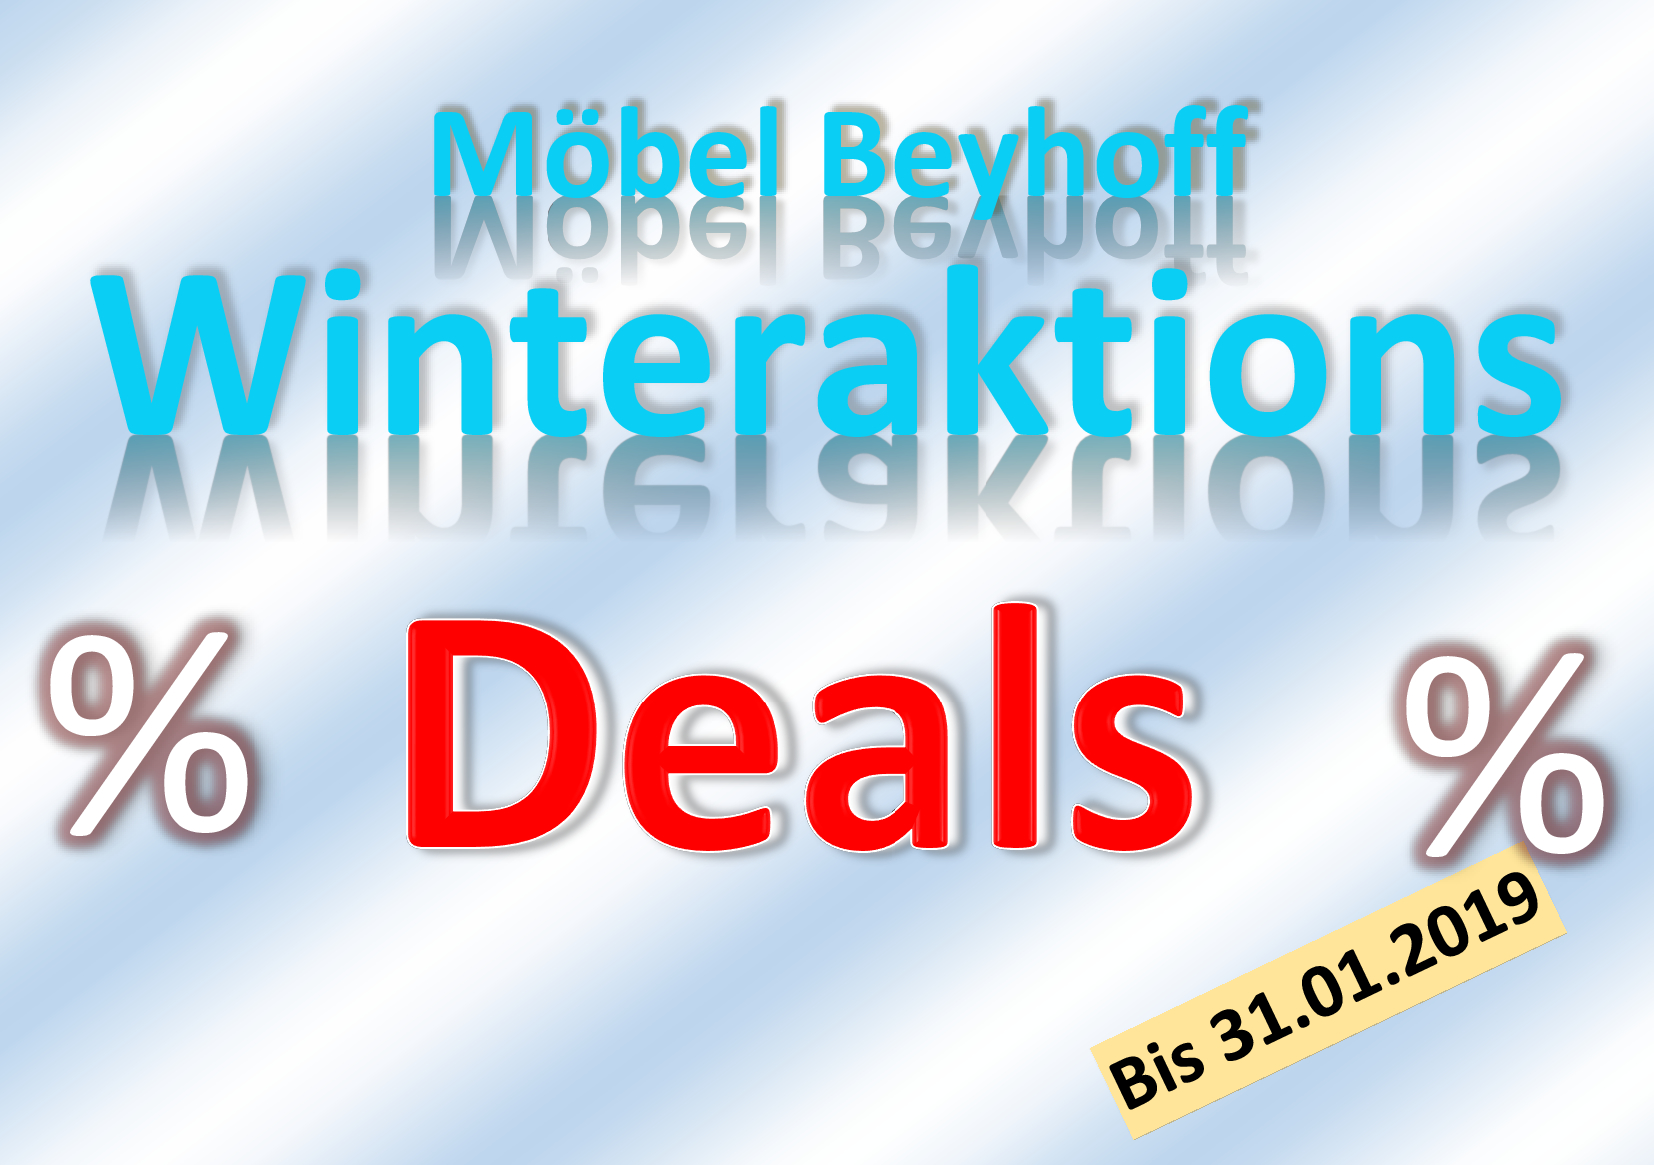 Winteraktions Deals Bei Mobel Beyhoff In Bottrop Unser Bottrop App